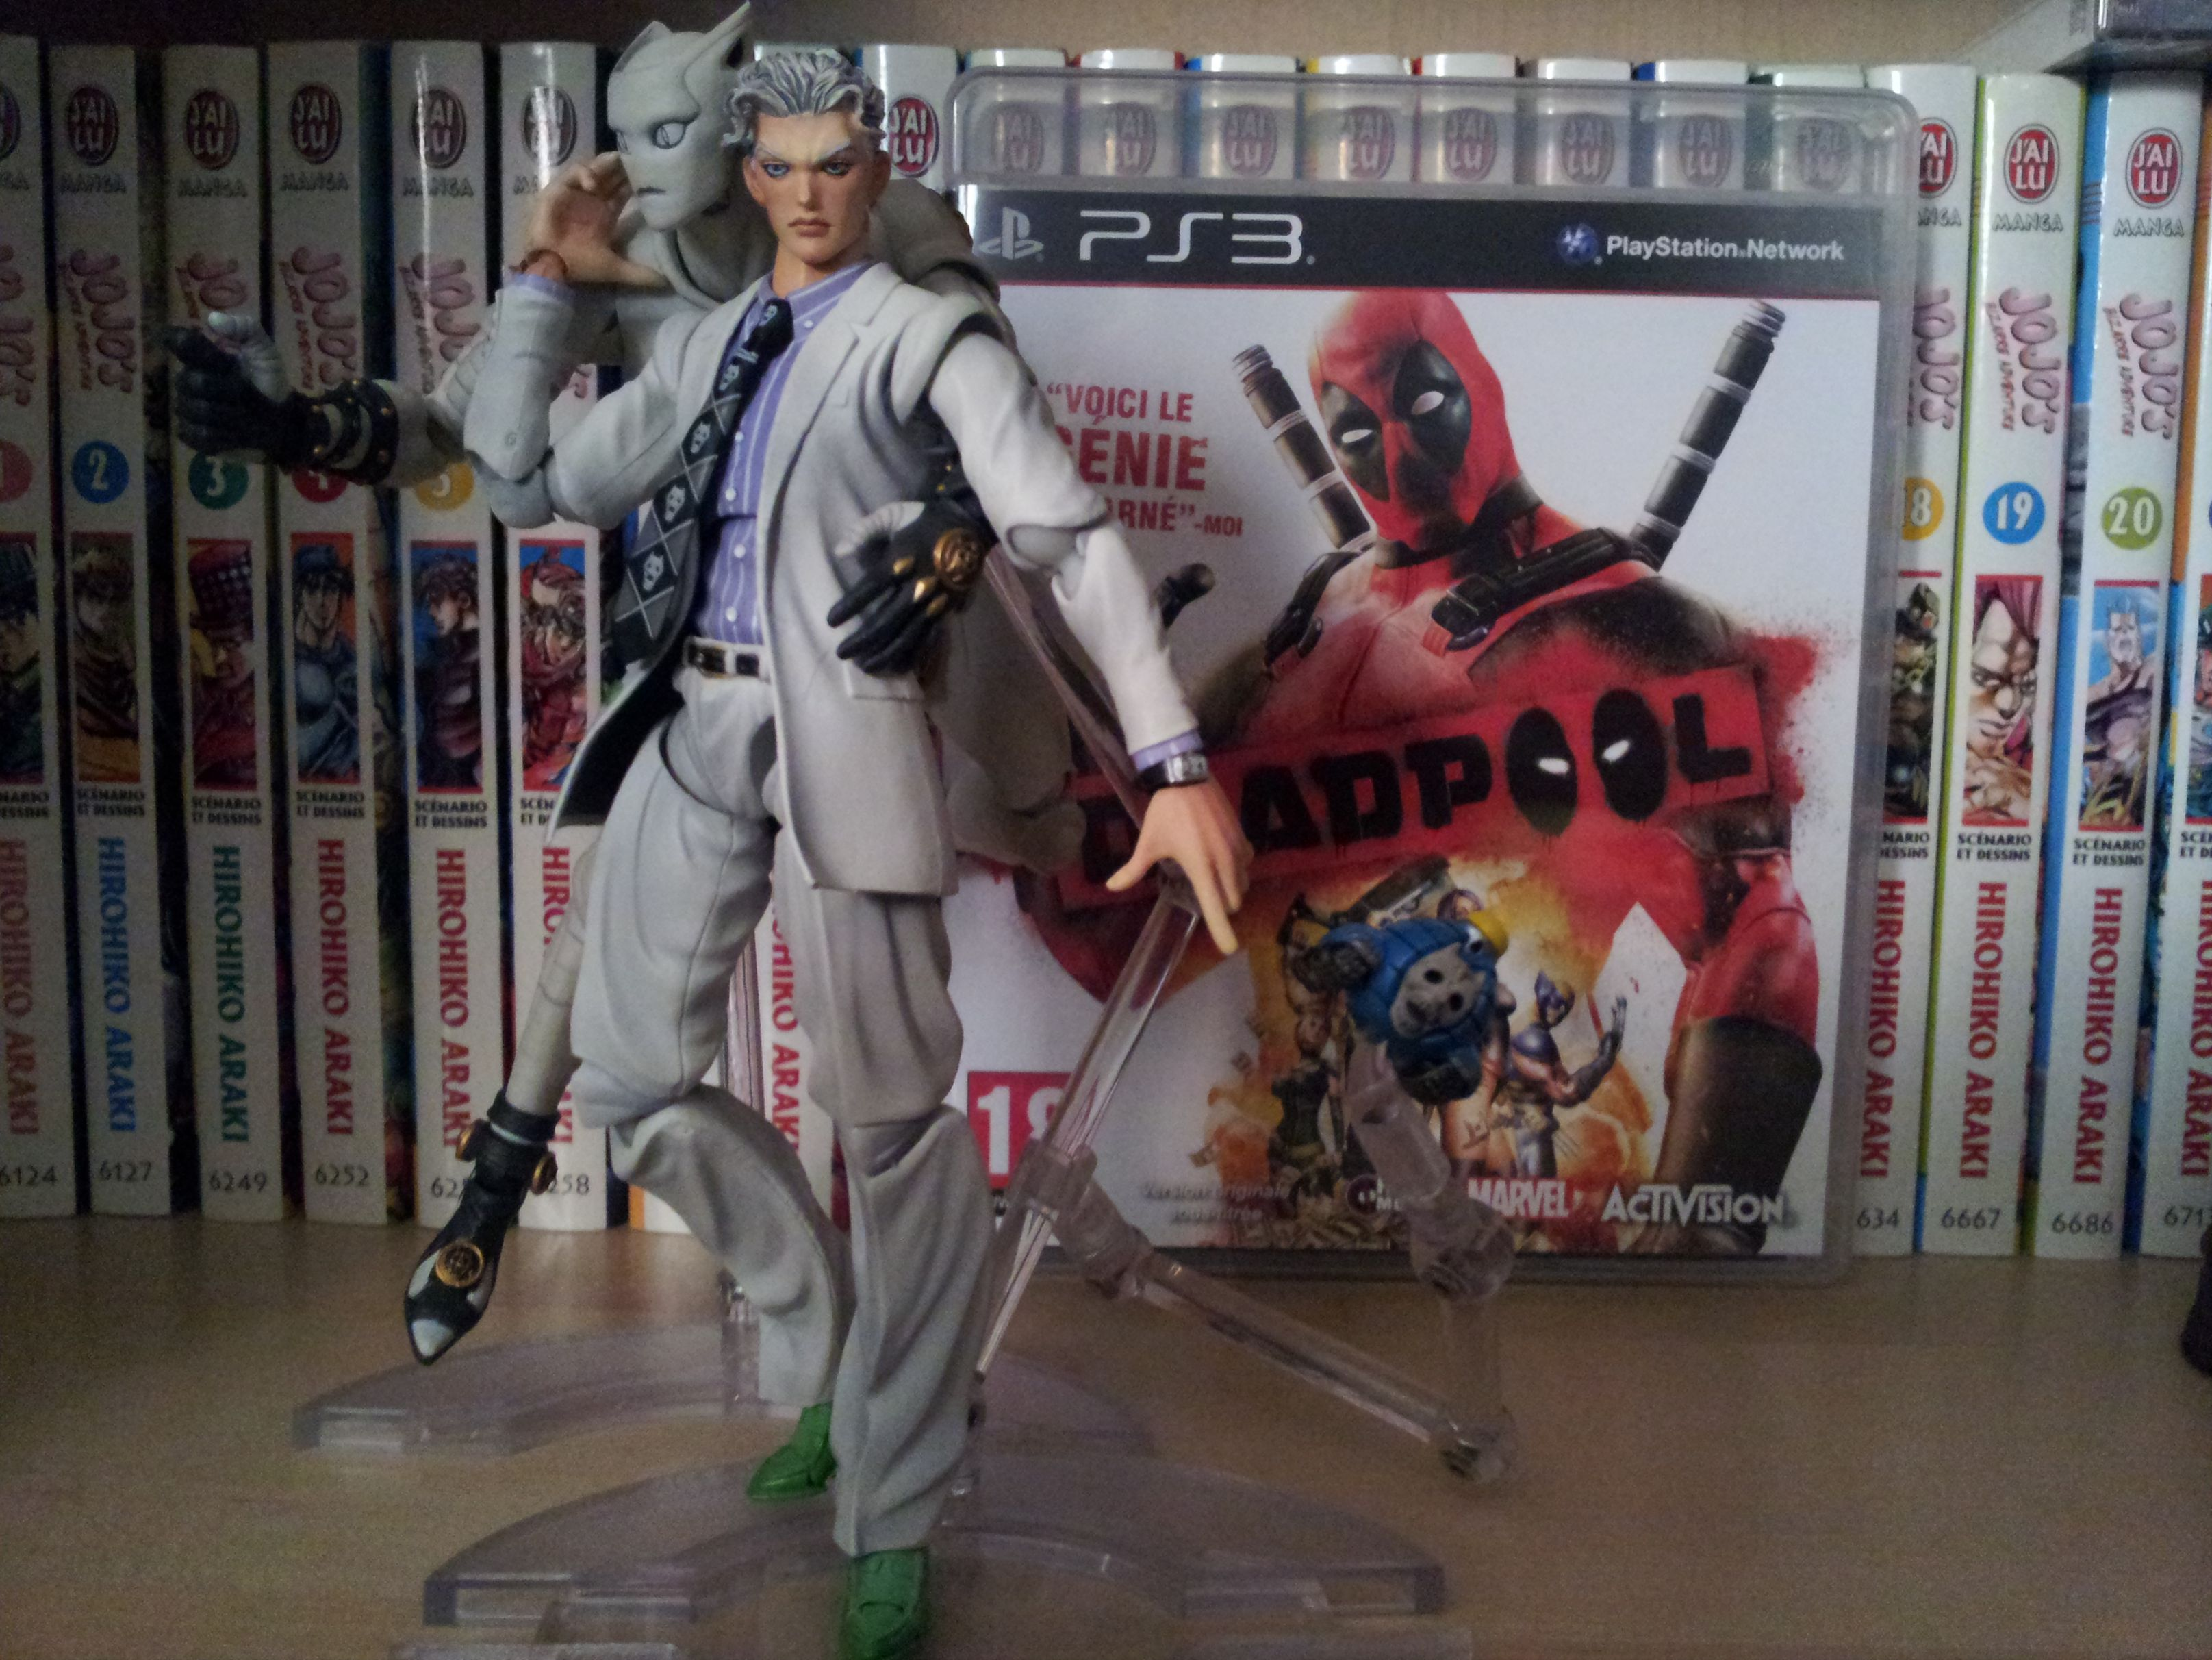 Achat S.A.S Kira Yoshikage Deadpool PS3 Band of Geeks (1)